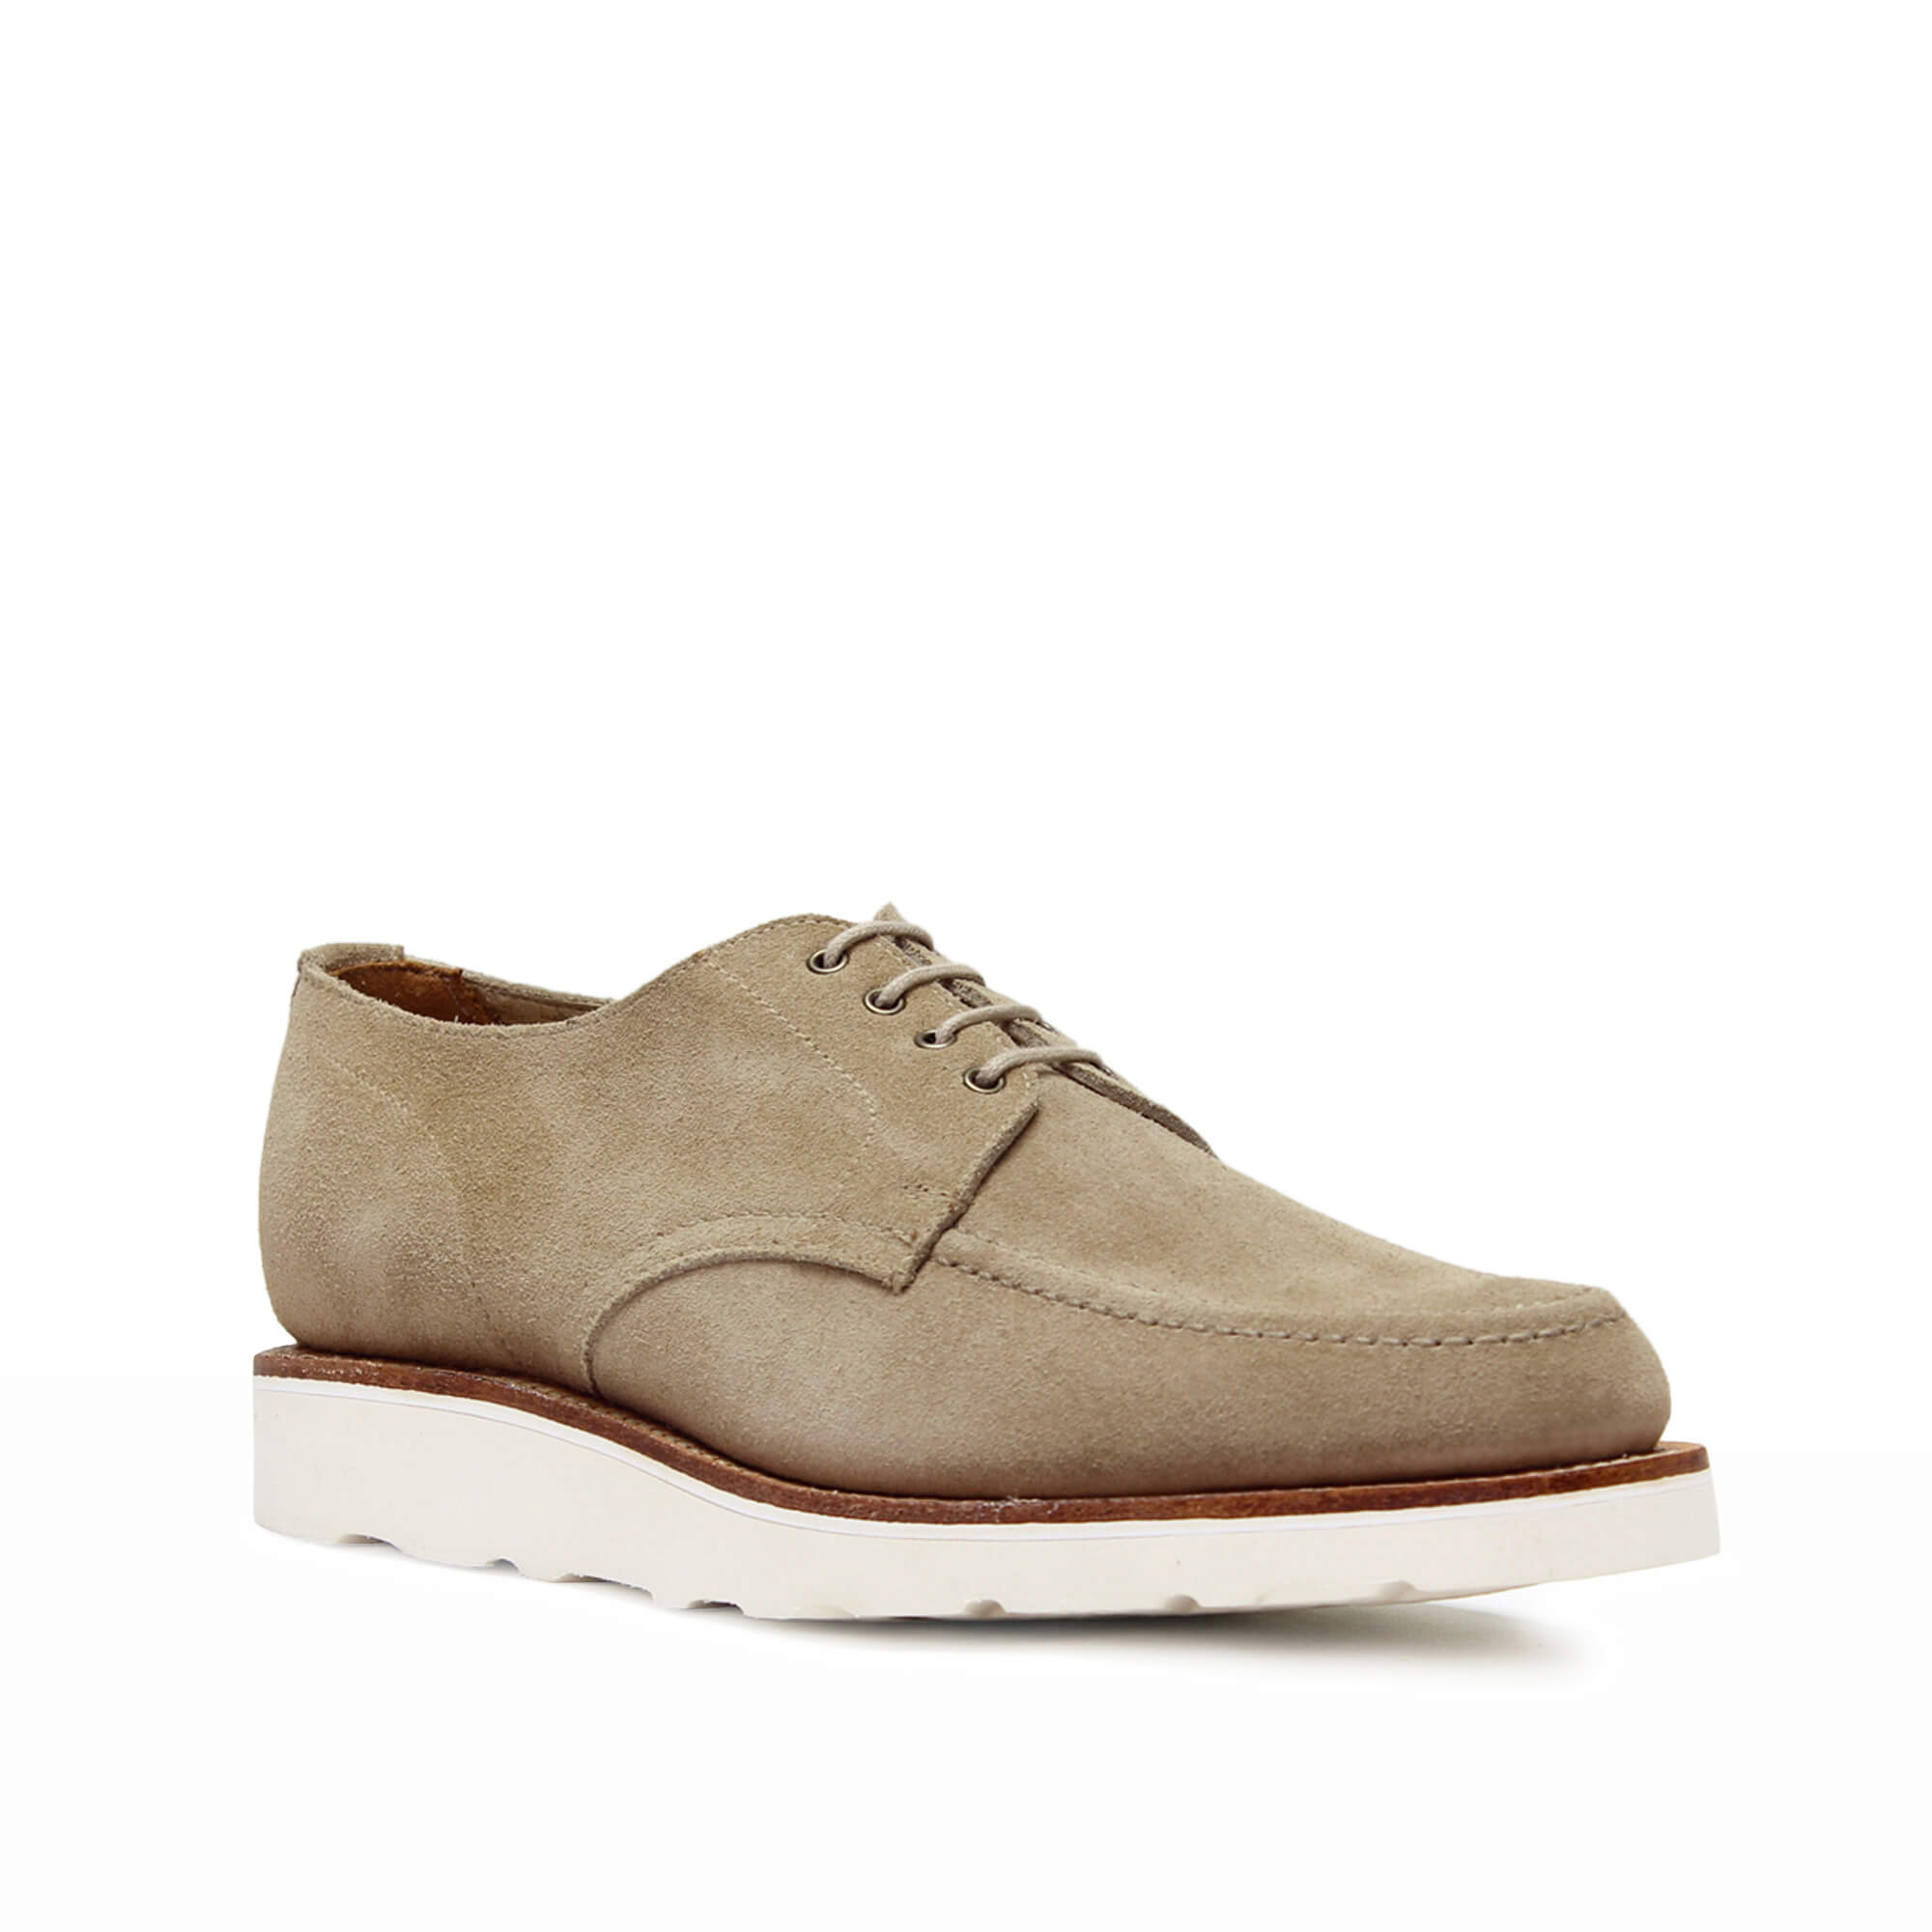 Sanders Men's Henry Suede Lace-Up Shoes 2132/MKS